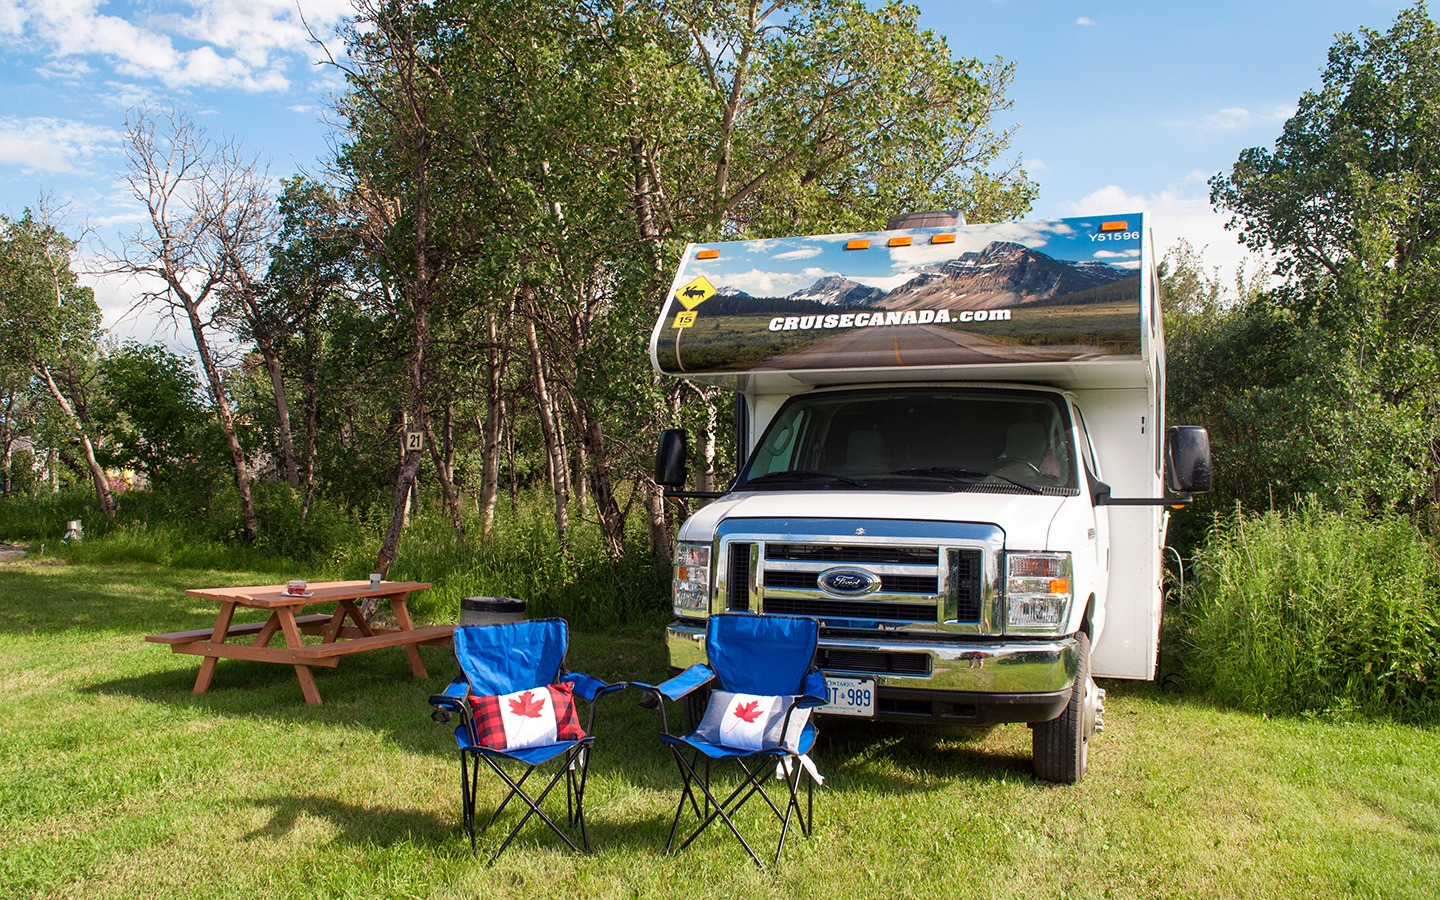 The first-timer's guide to Canada by RV motorhome